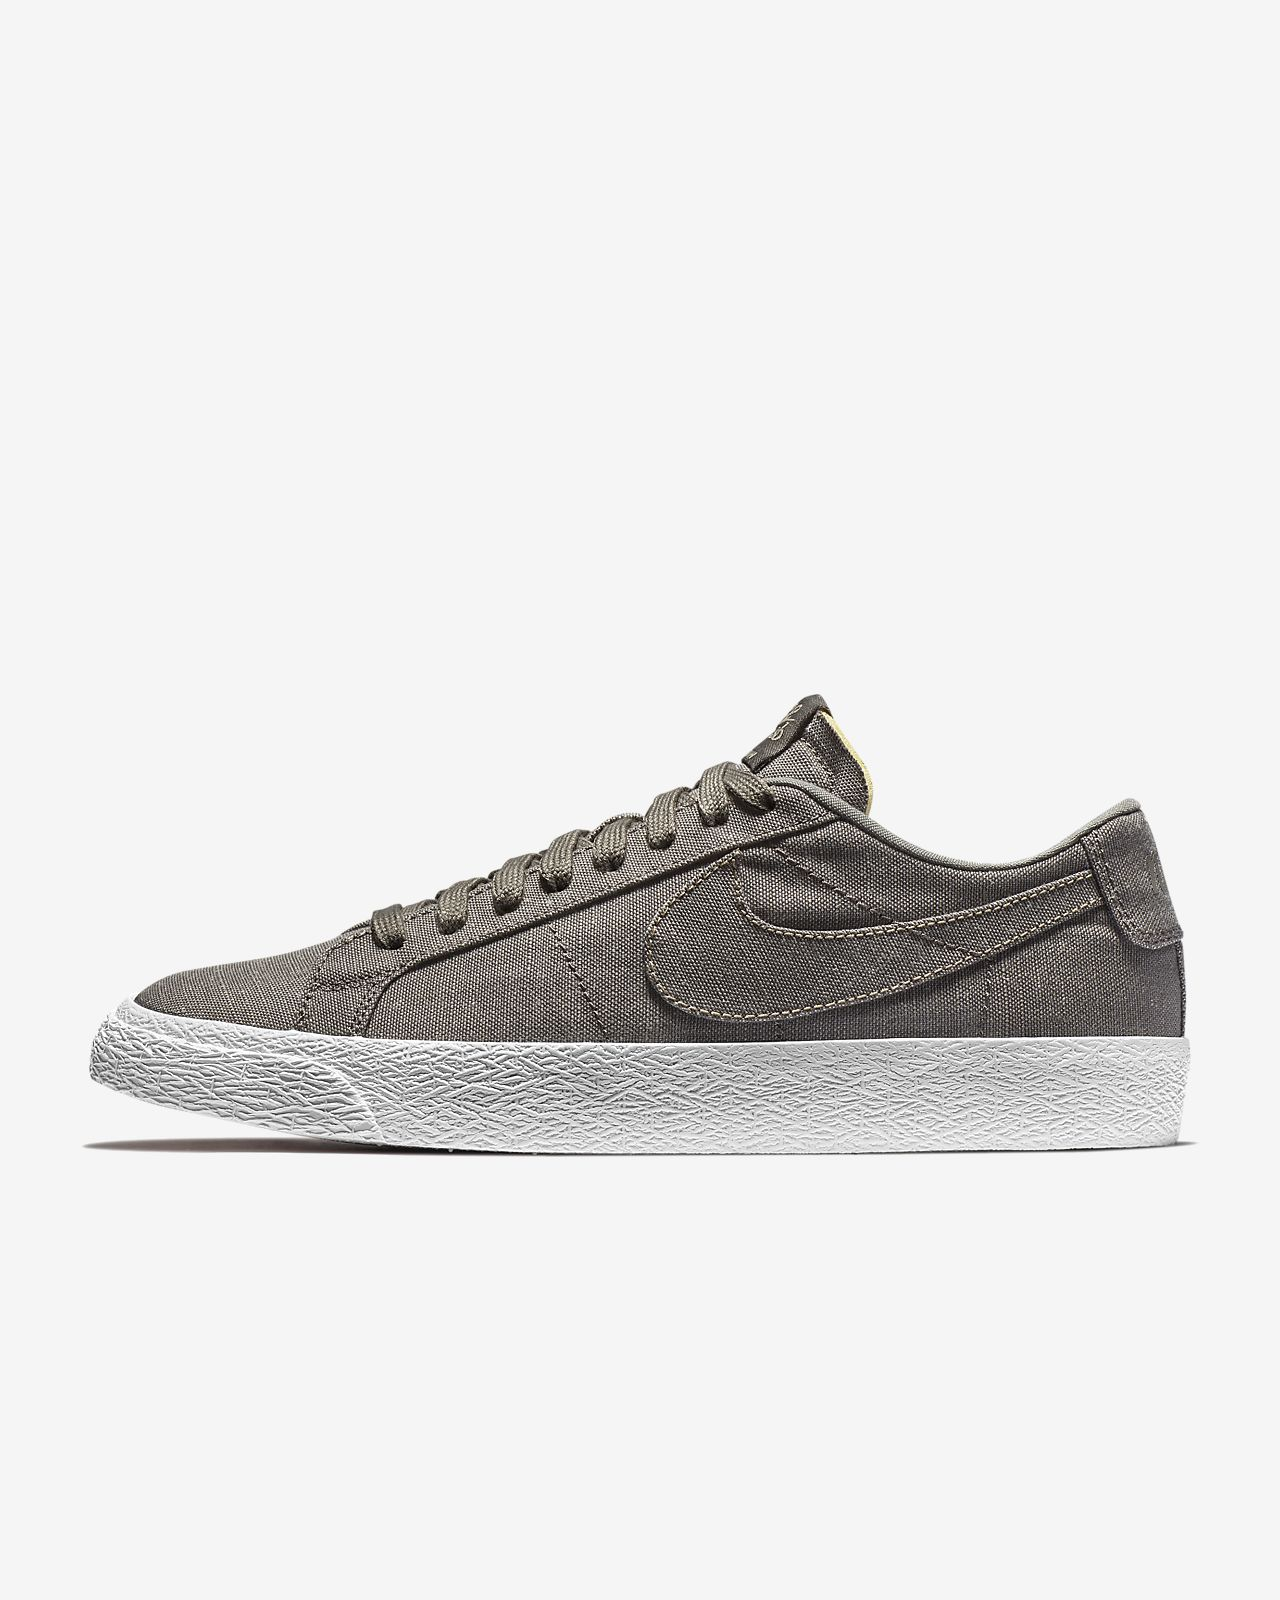 Nike SB Blazer Low Canvas Men's Skateboarding Shoe